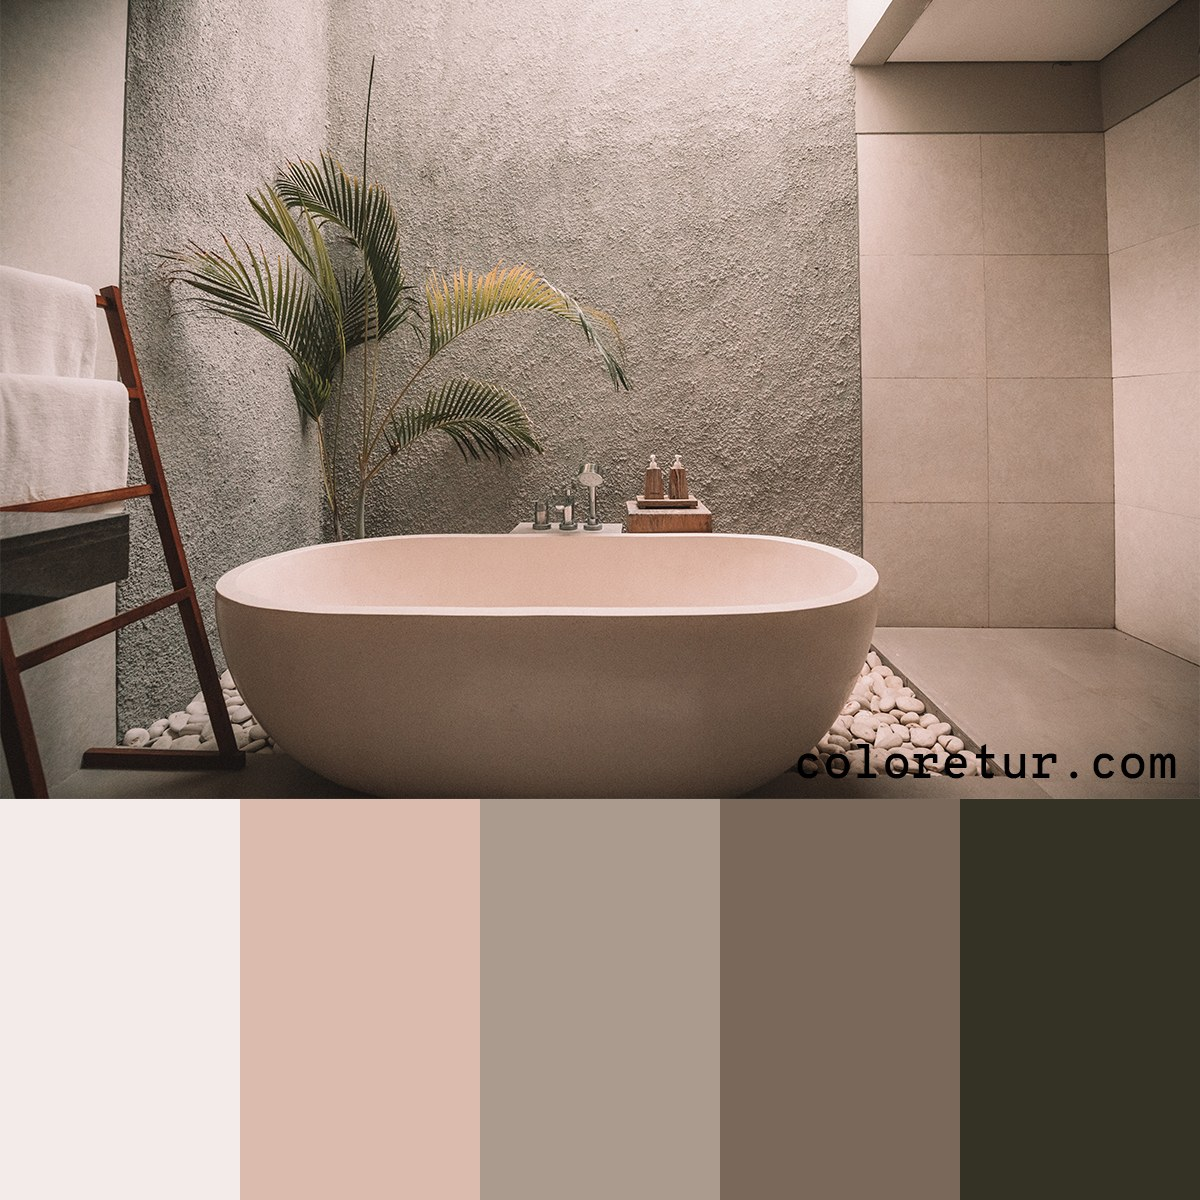 Neutral, natural colors from a bathroom made of stone and tile